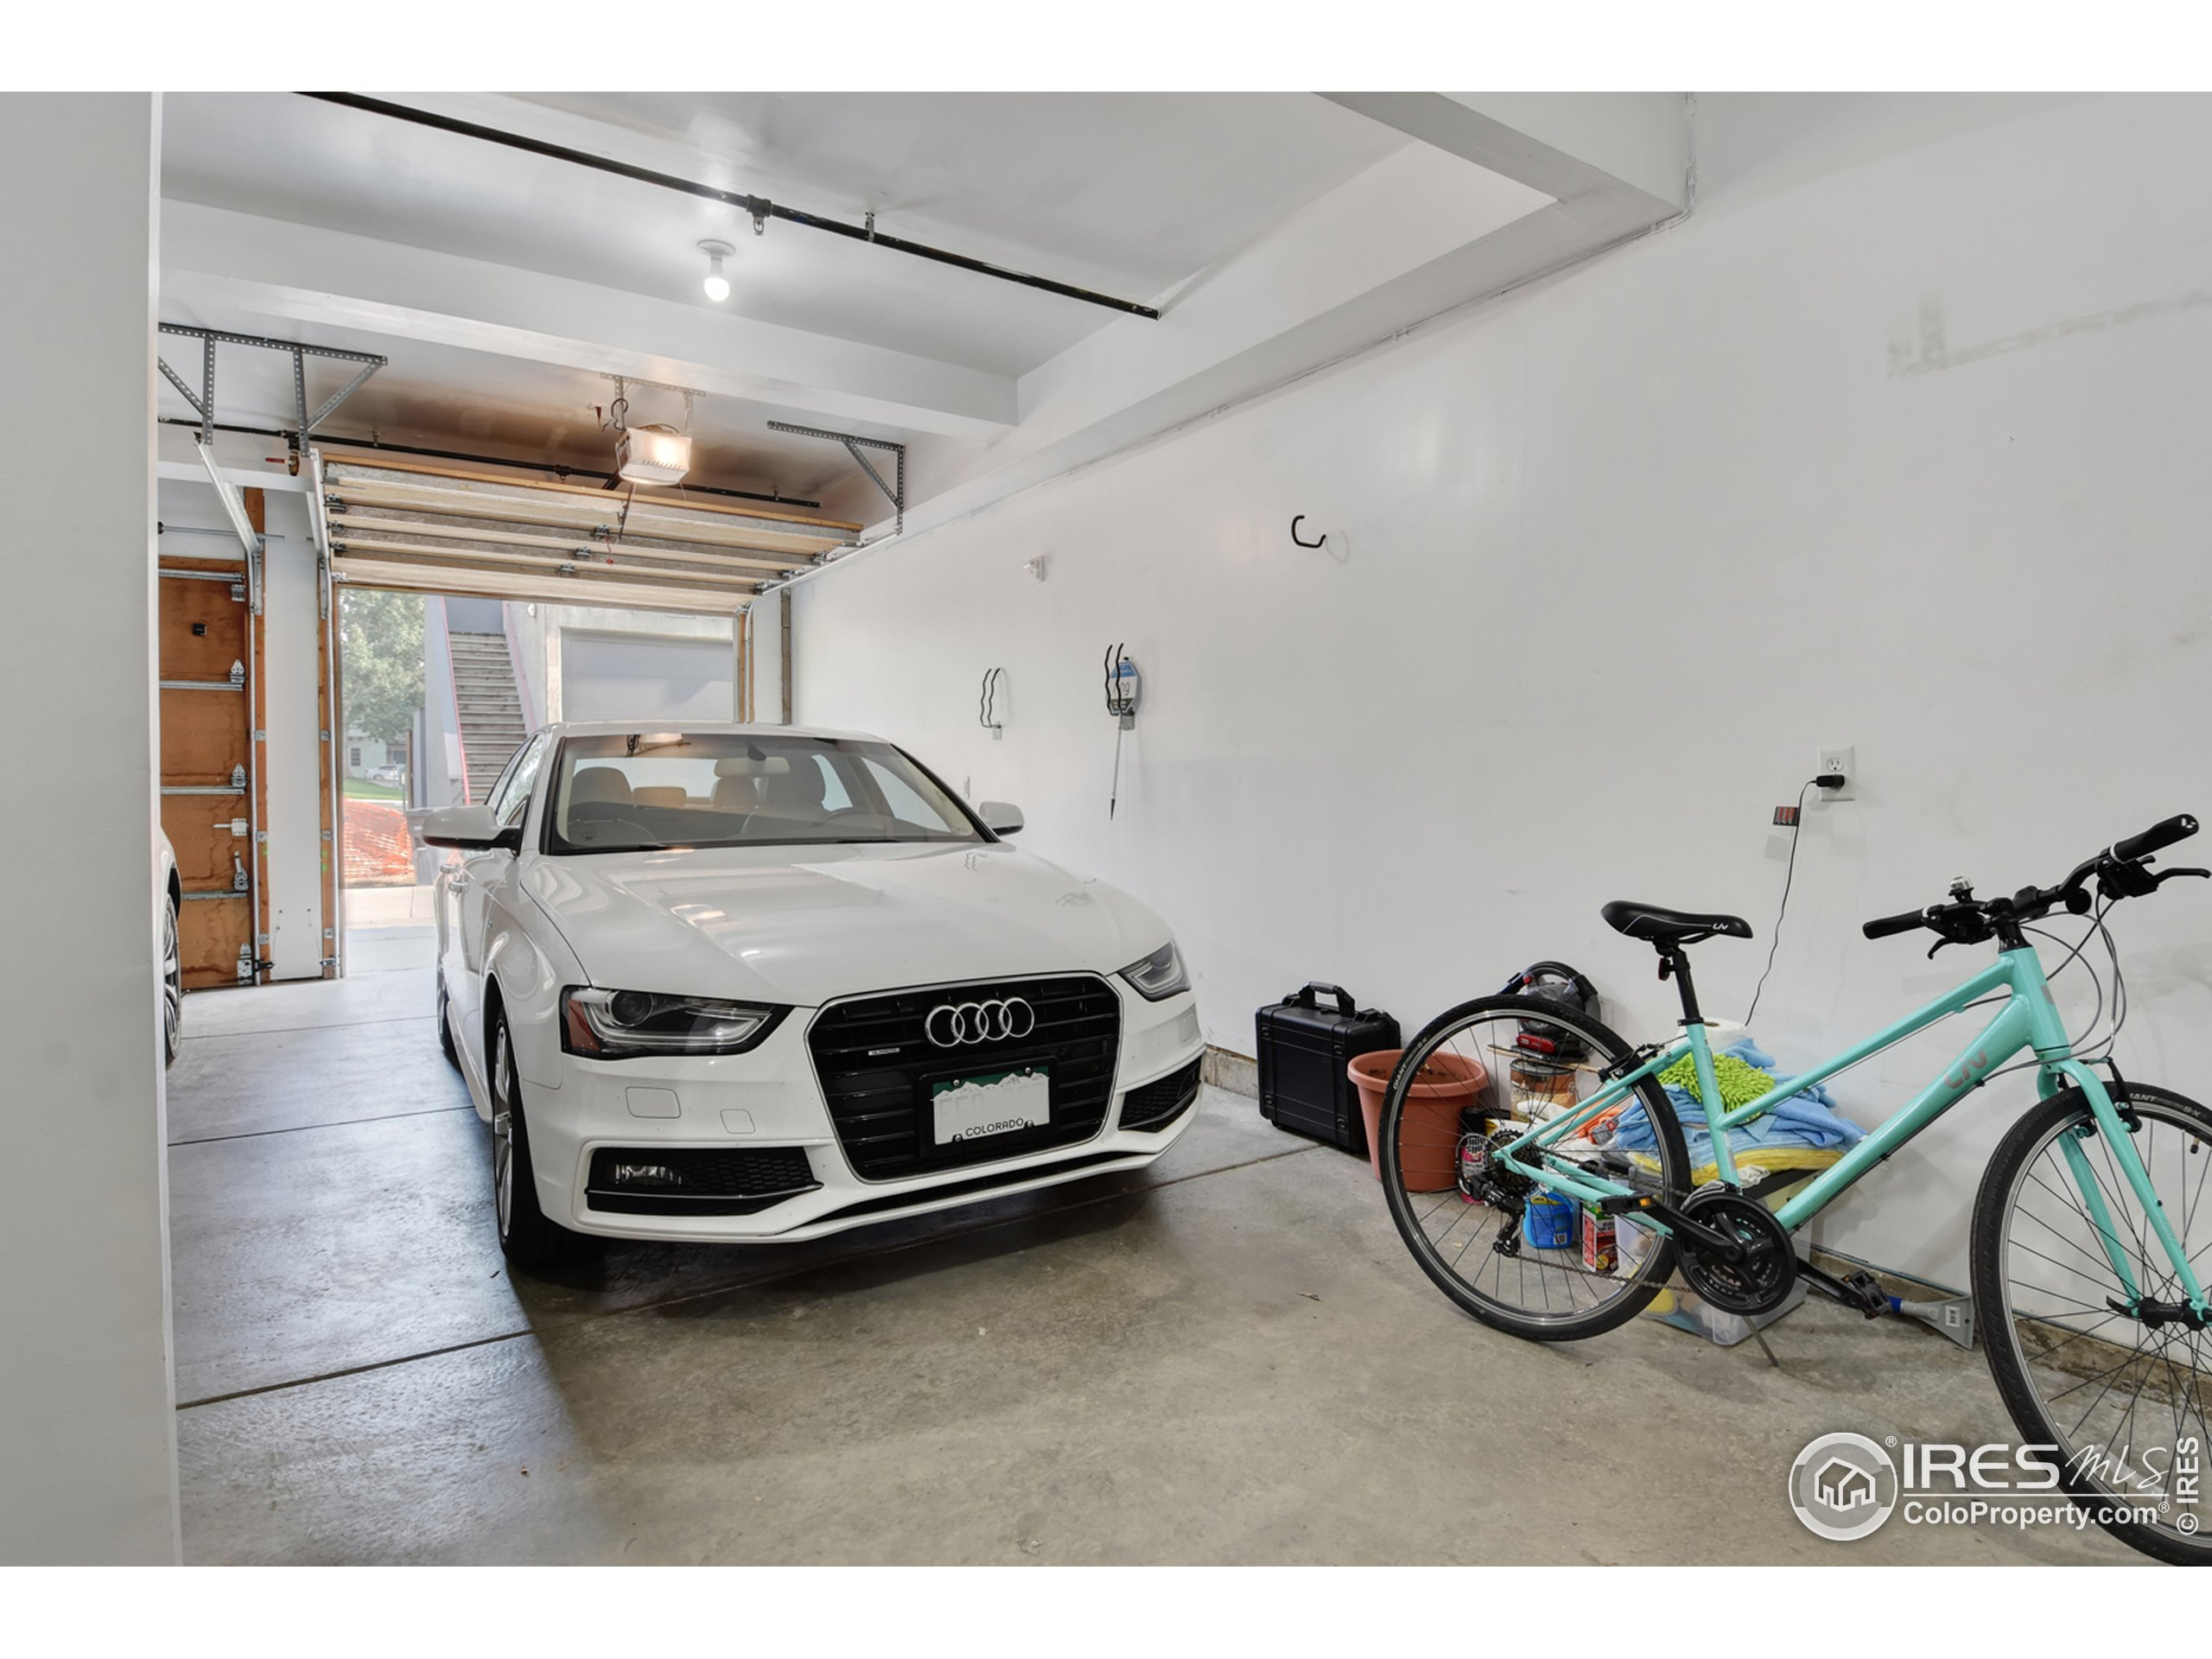 Room for 2 cars + toys